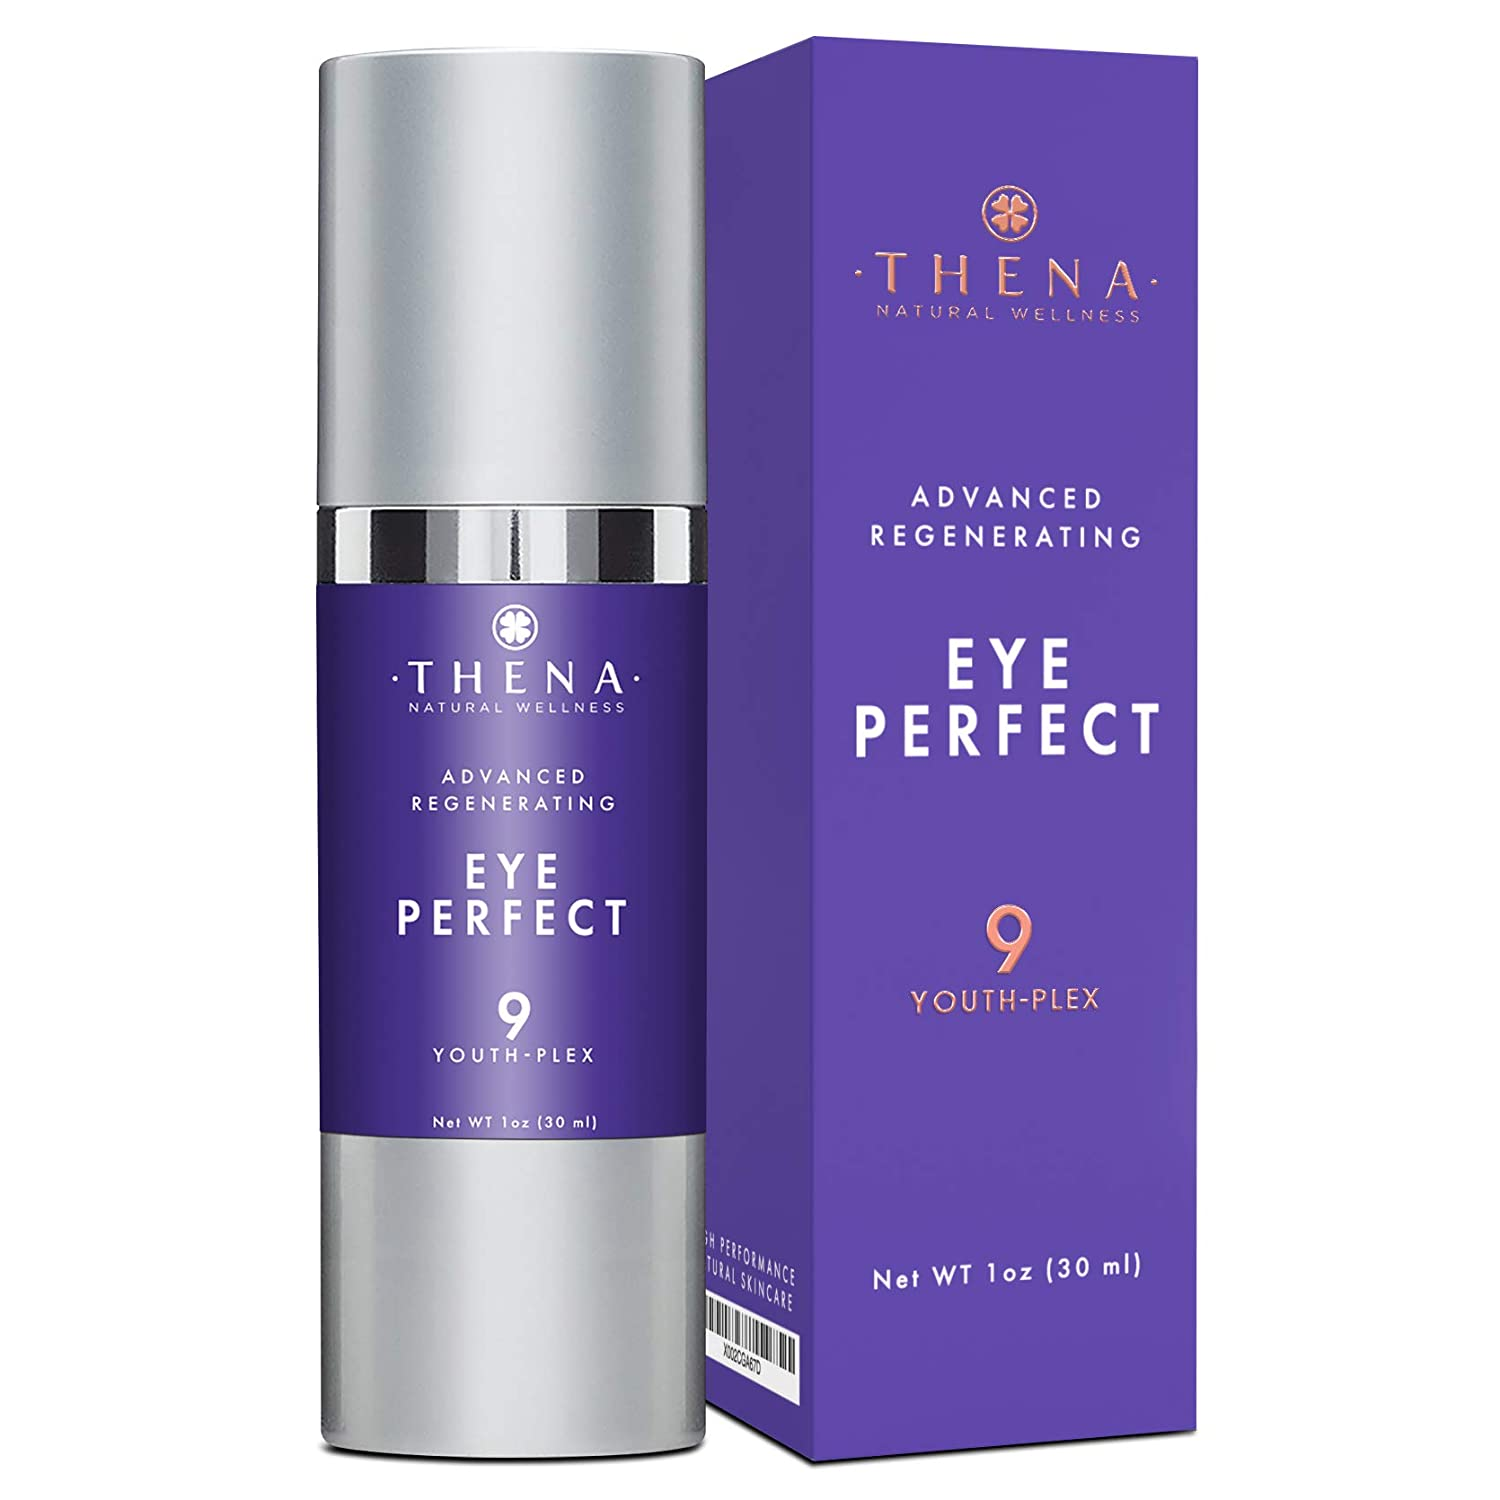 THENA Natural Wellness Anti-Aging Eye Cream